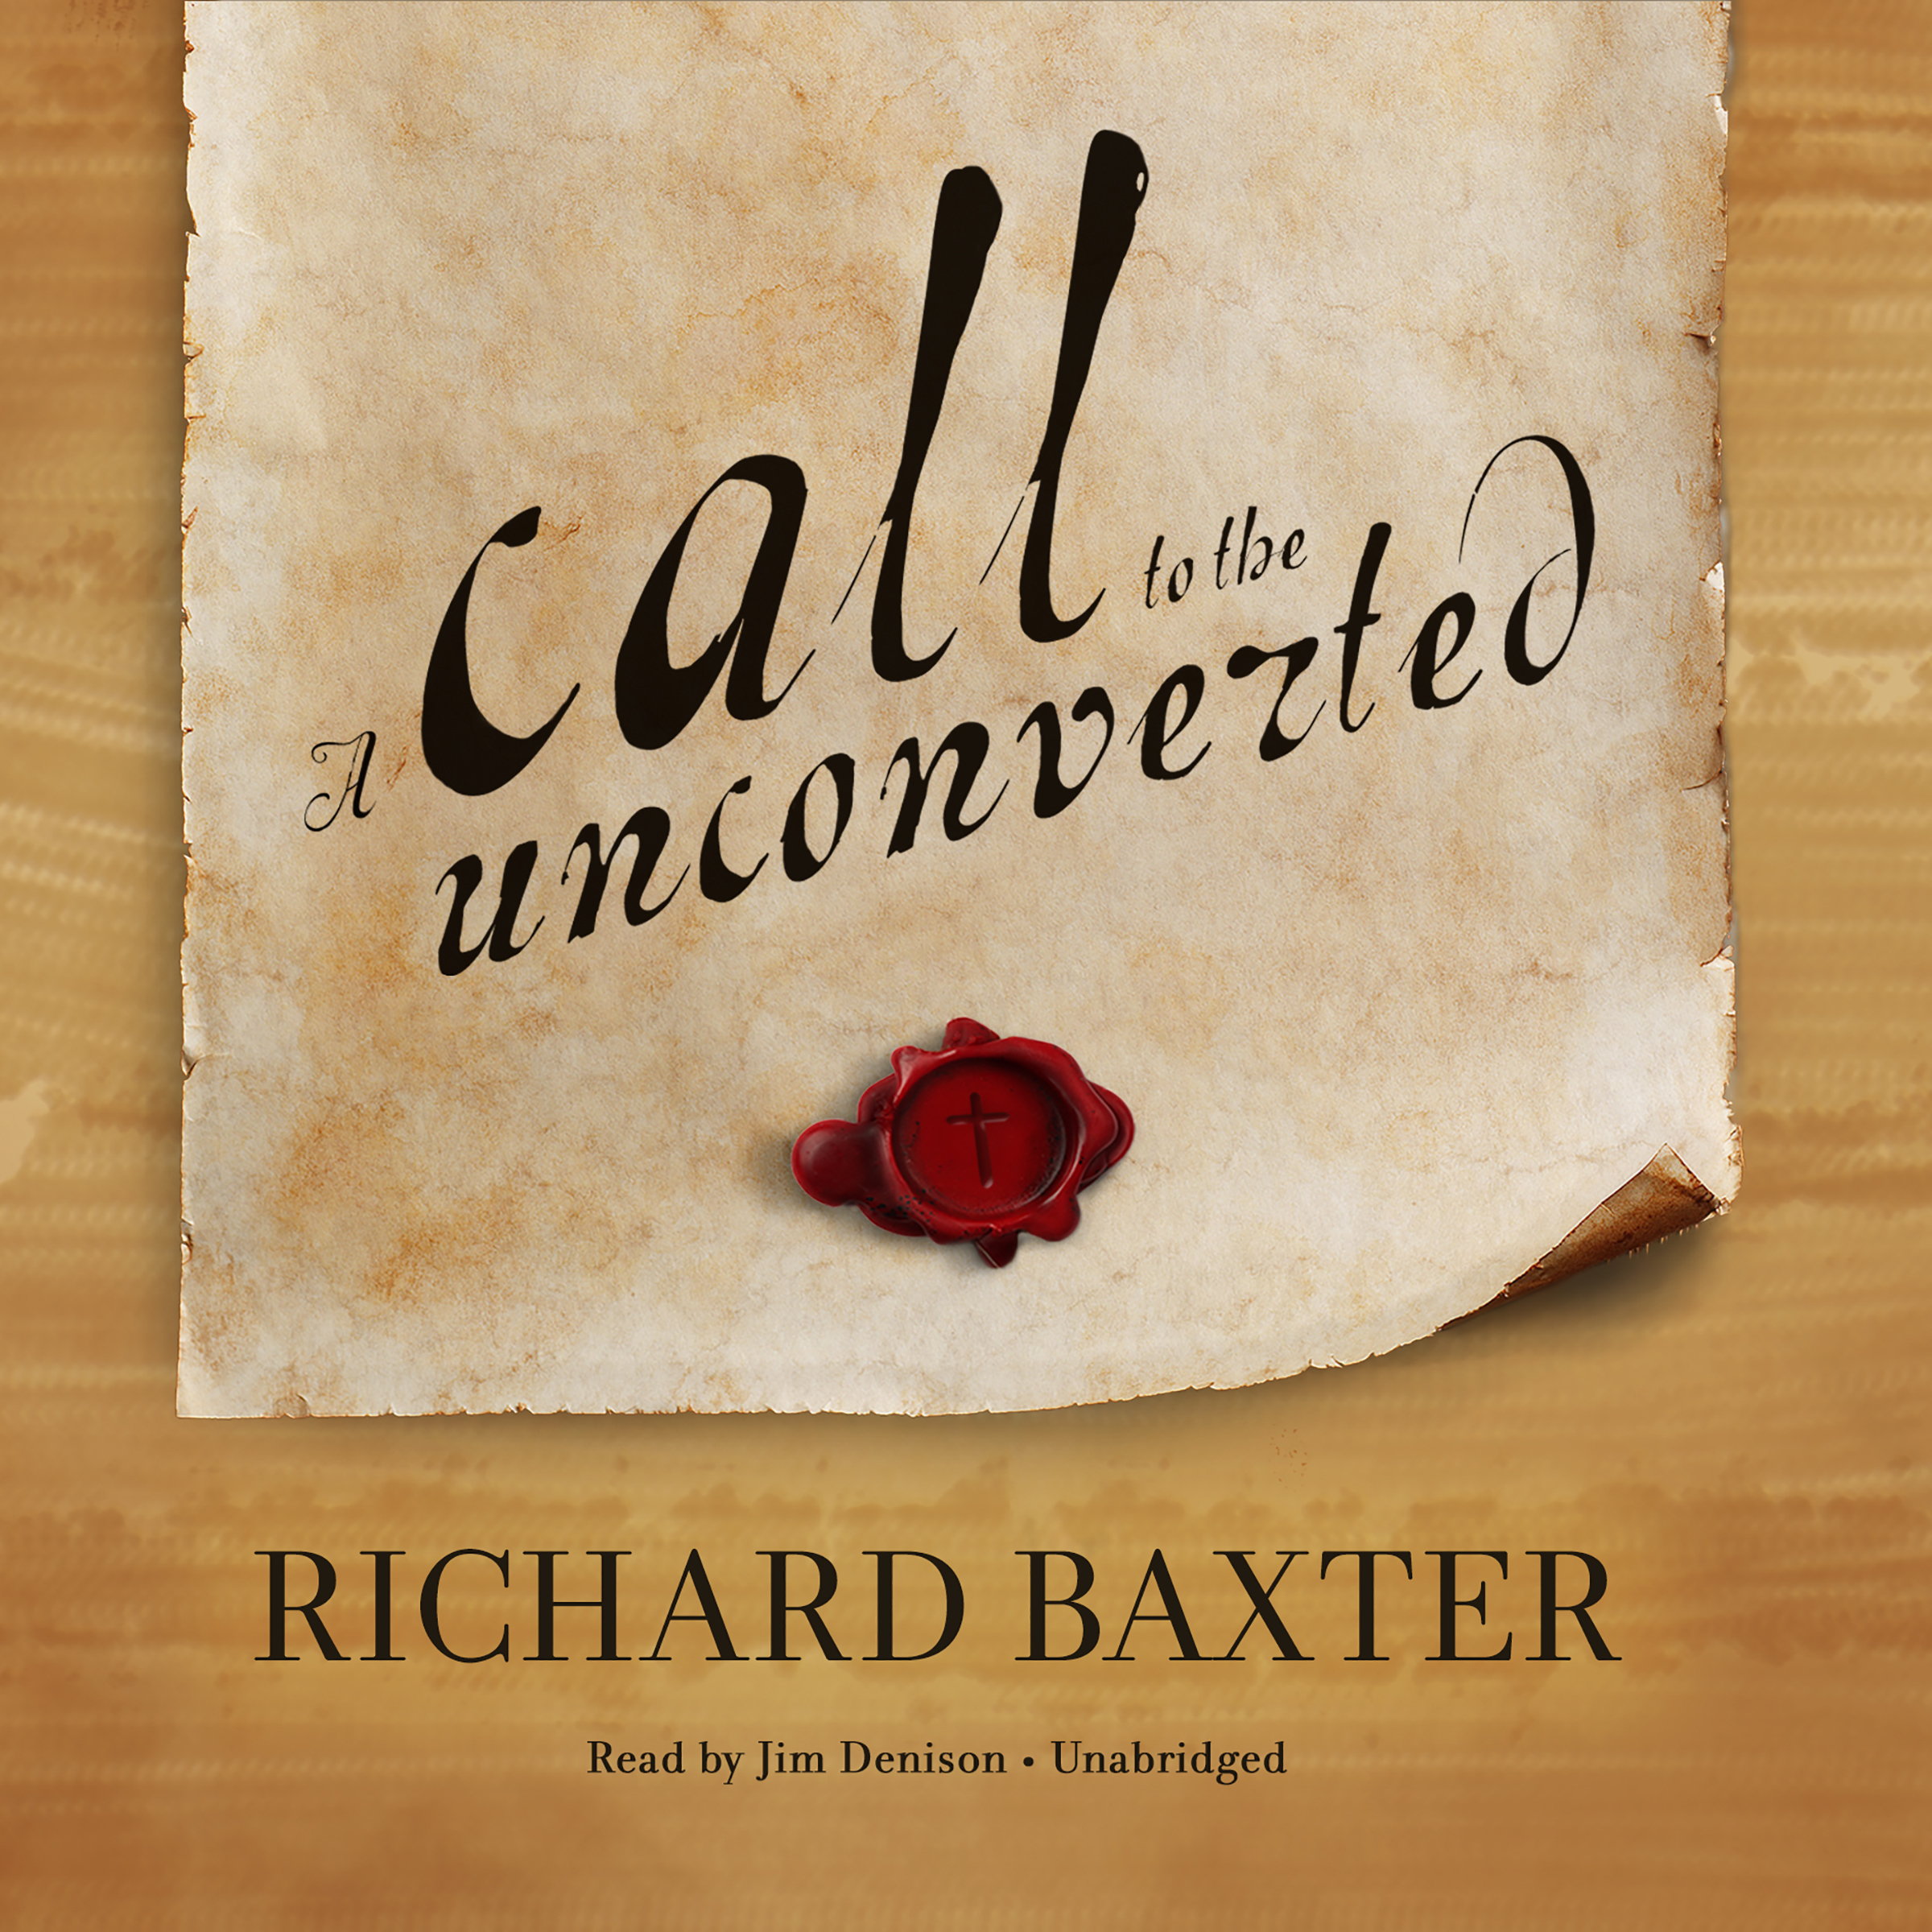 Printable A Call to the Unconverted Audiobook Cover Art